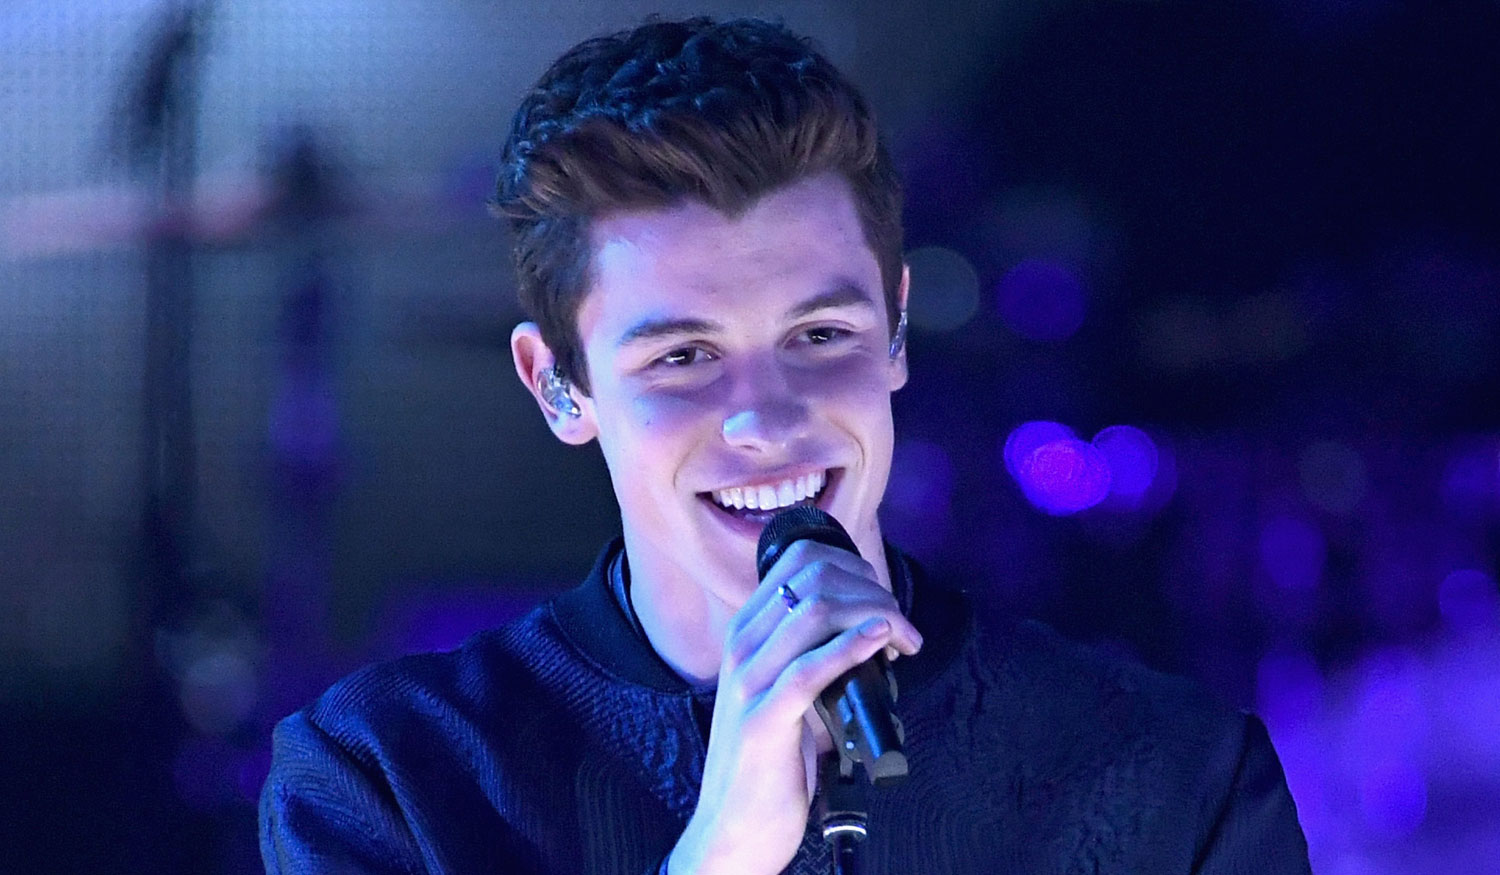 Shawn Mendes: Shawn Mendes Performs 'Mercy' At IHeartRadio Music Awards